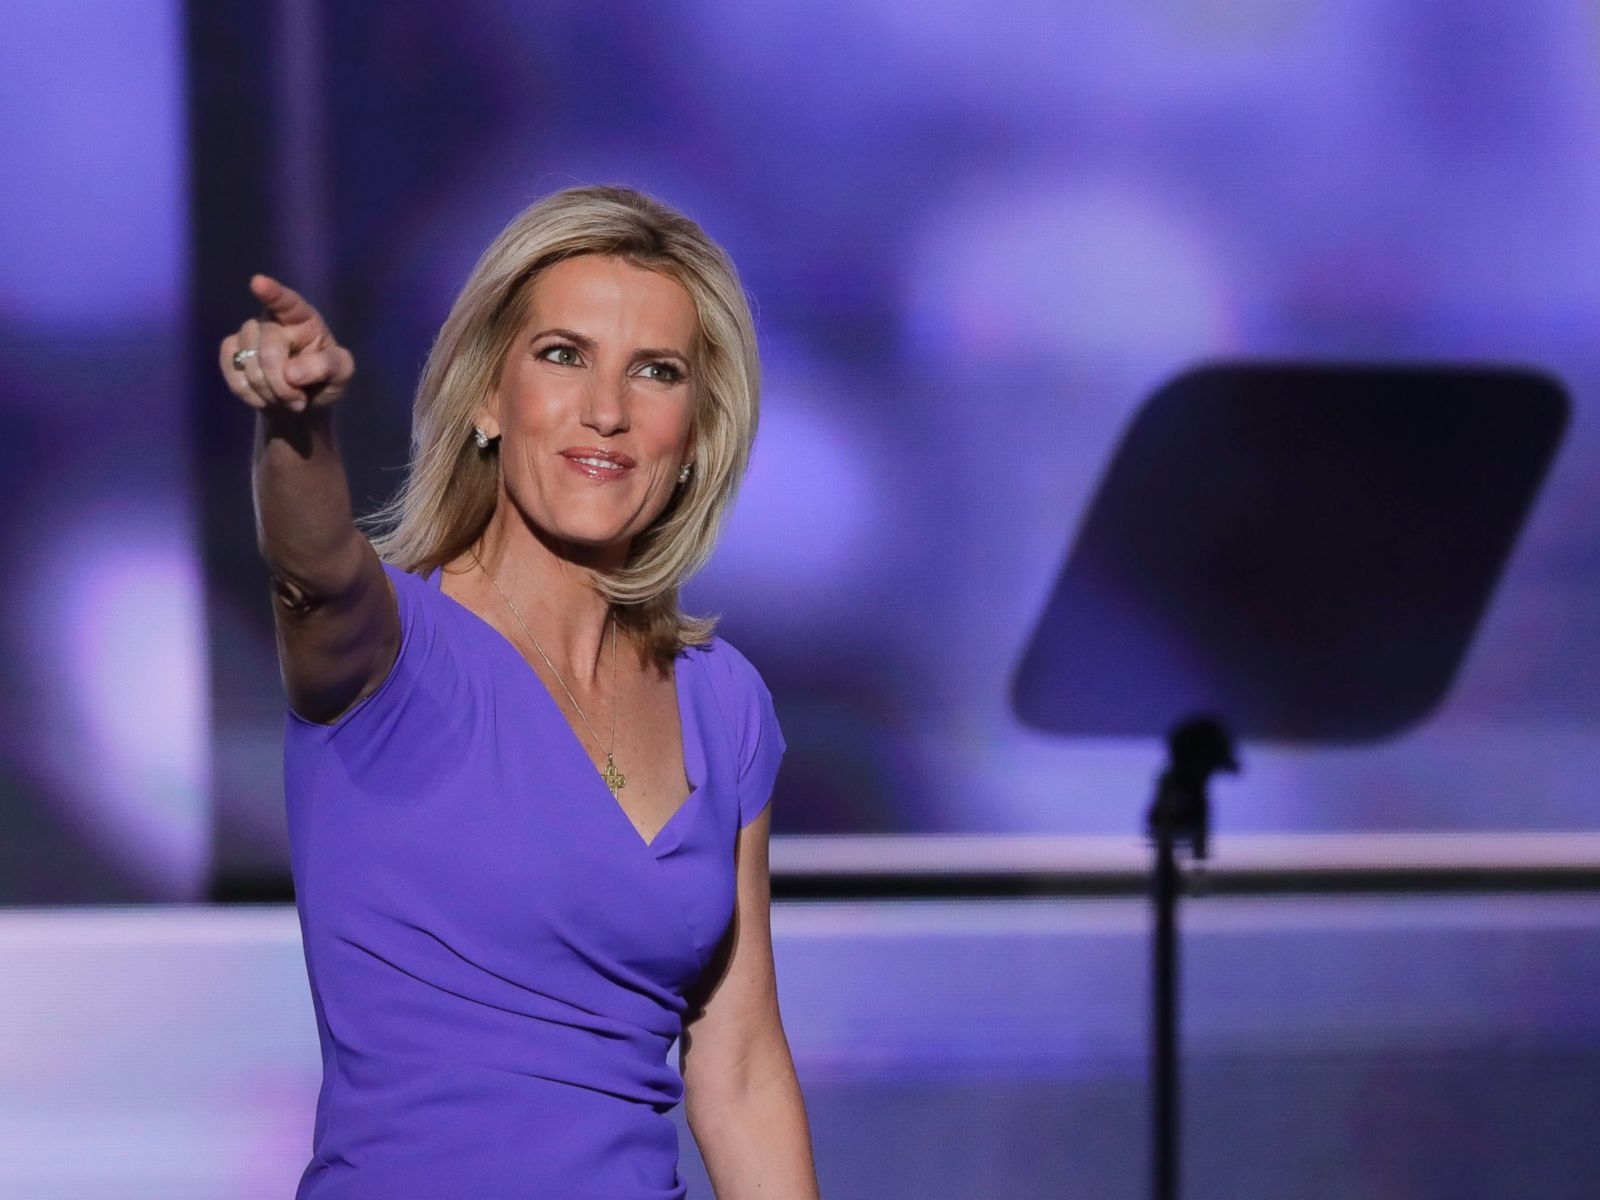 Laura Ingraham Returns Following Boycott Says Liberals Cutting Off Free Speech Abc News